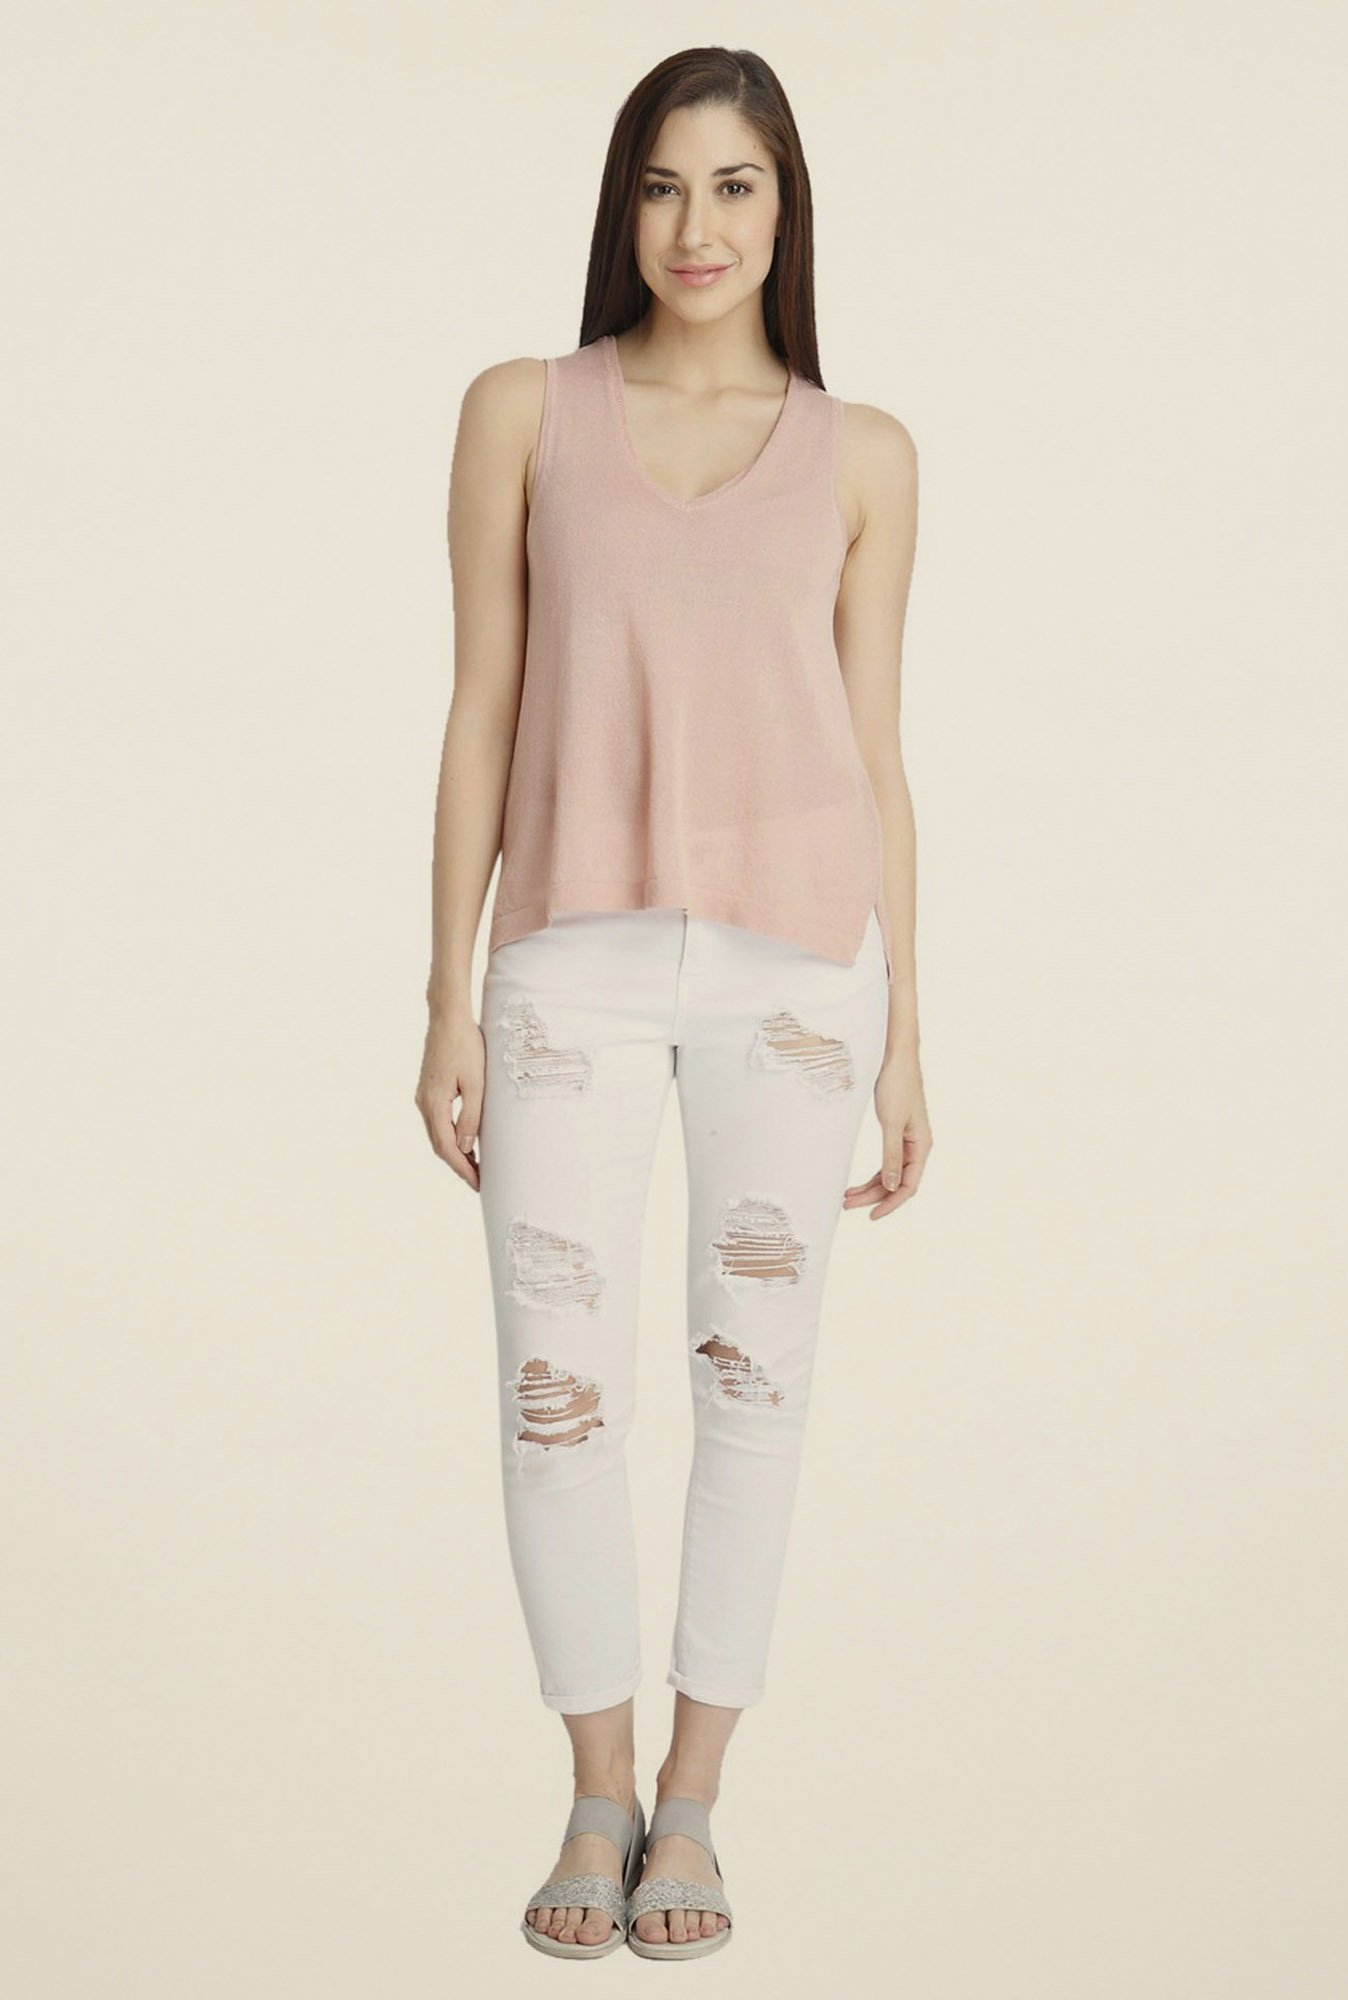 Vero Moda Light Rose Solid Top